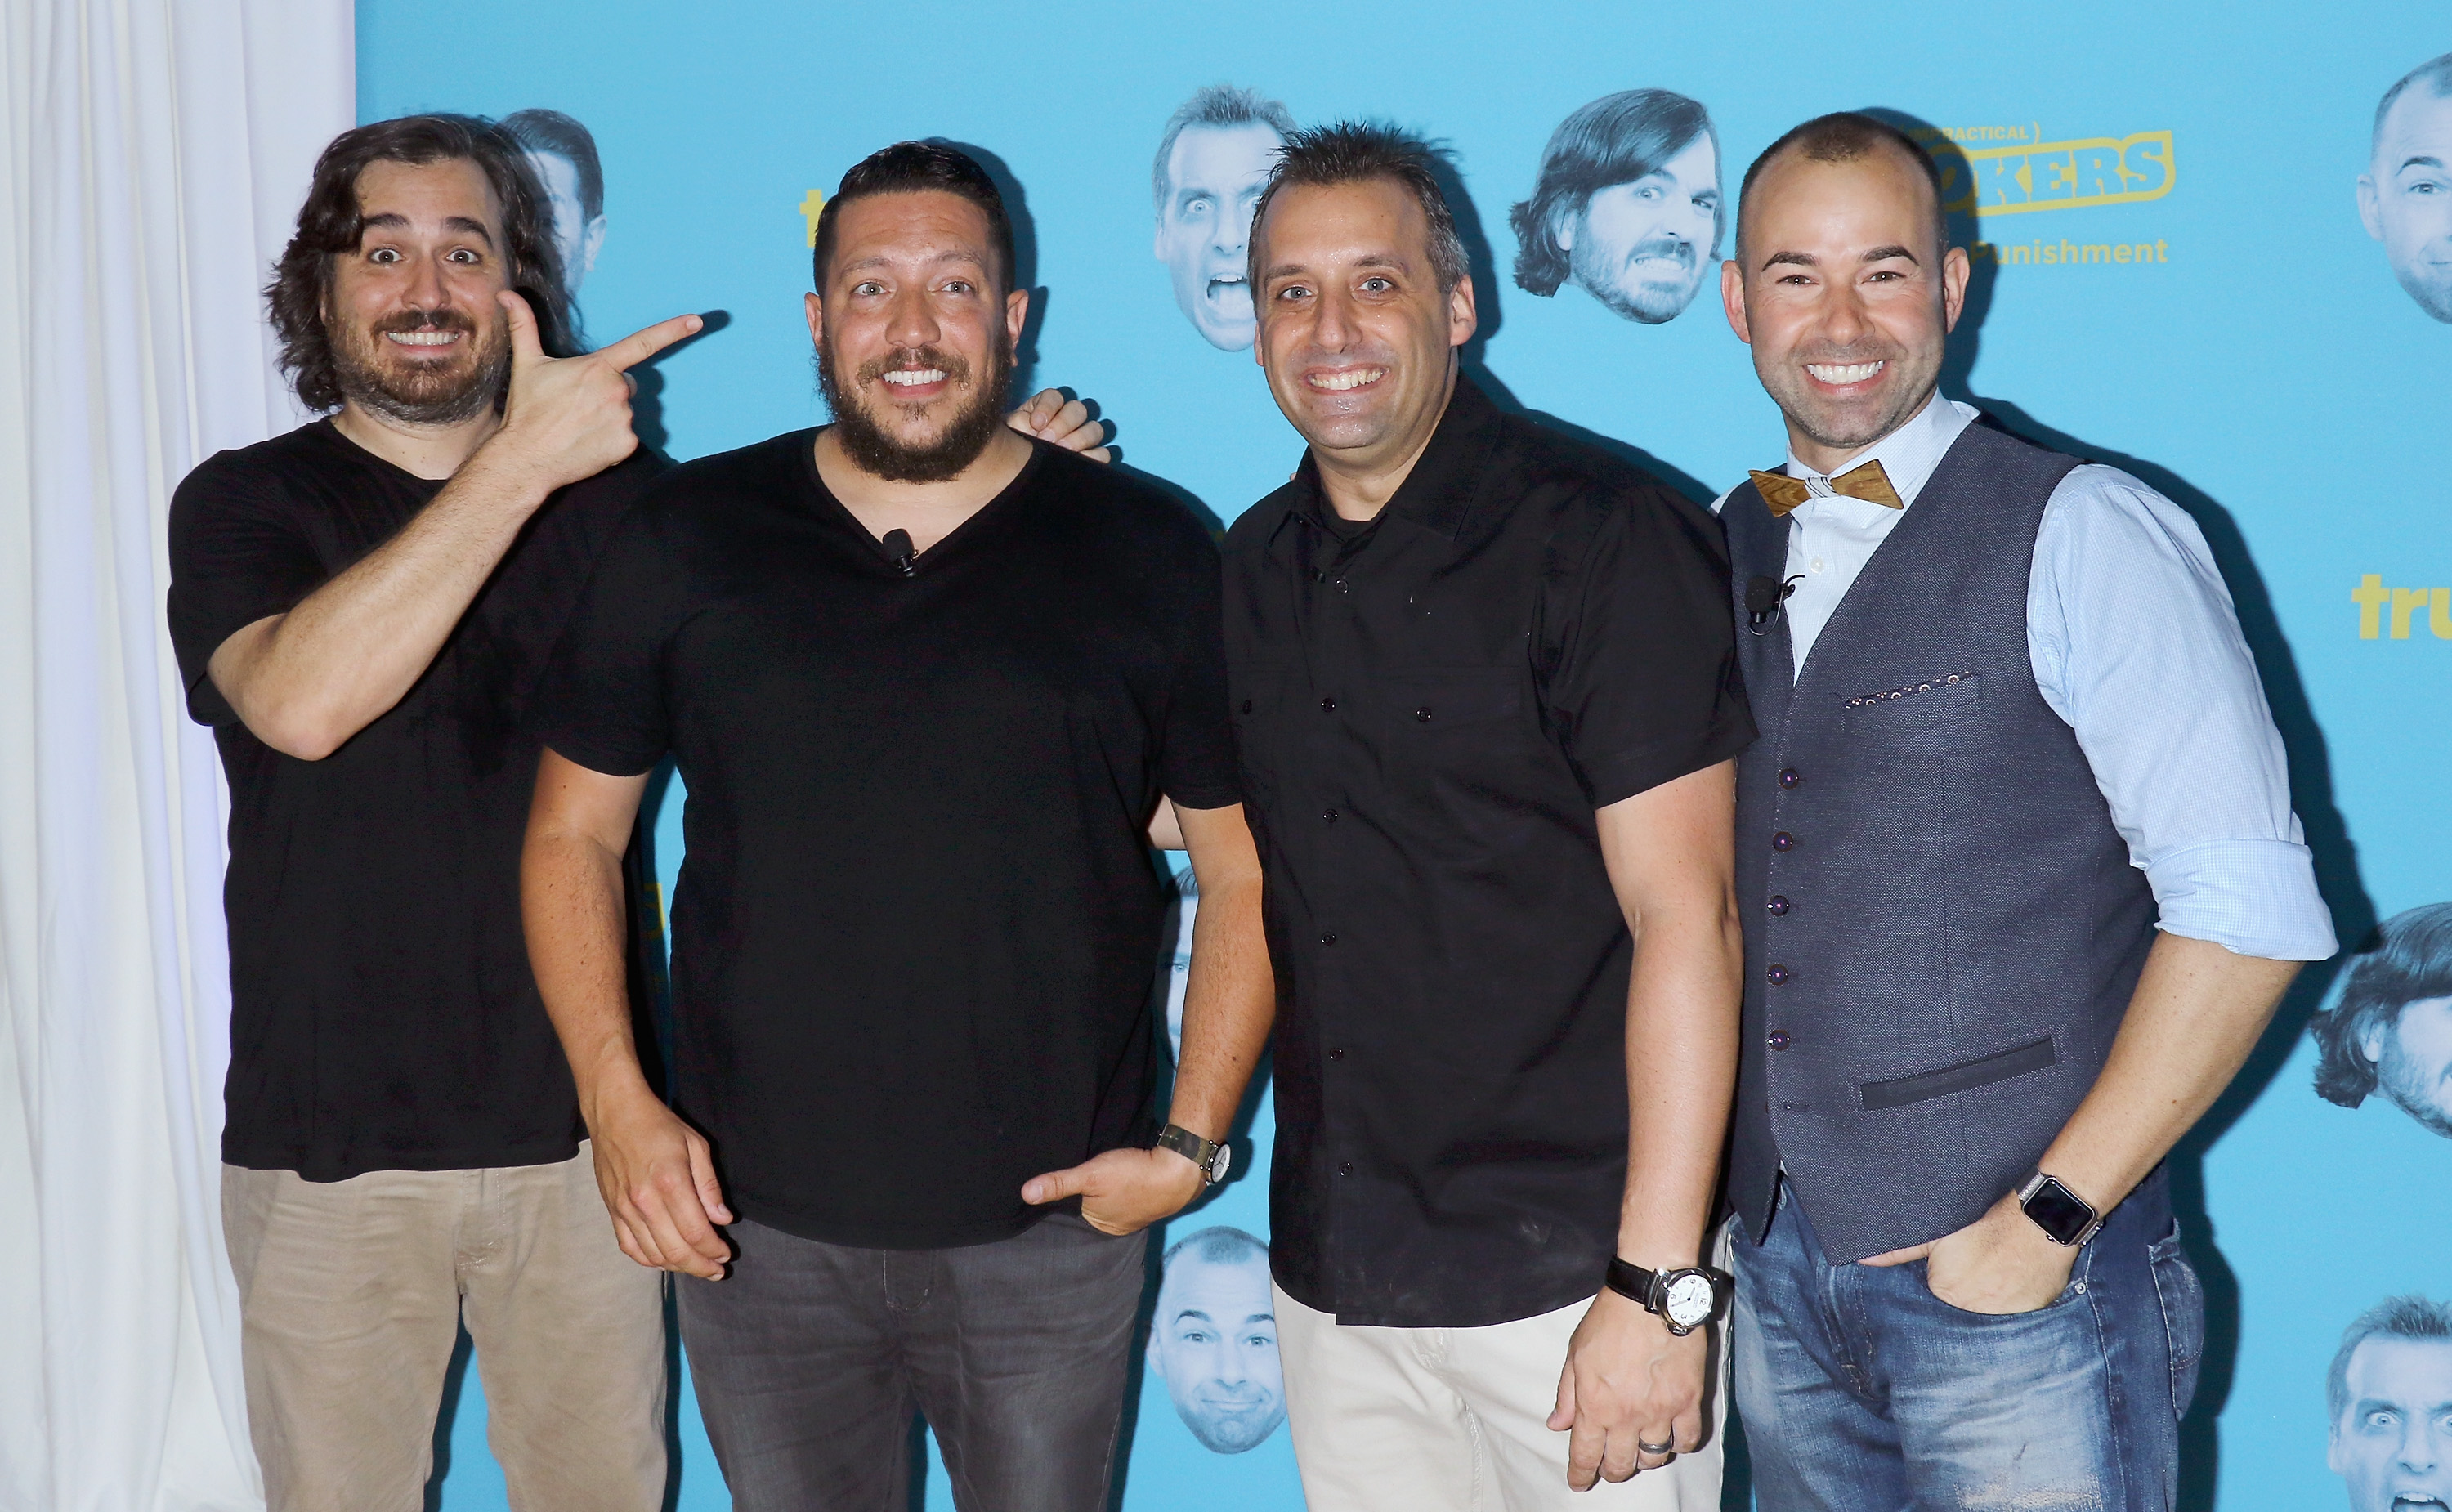 Joe Gatto Reveals Q Is His Biggest Competition On Impractical Jokers Find Out Why Exclusive In Touch Weekly Rhp joe gatto assigned to los angeles angels. https www intouchweekly com posts joe gatto impractical jokers q 109517